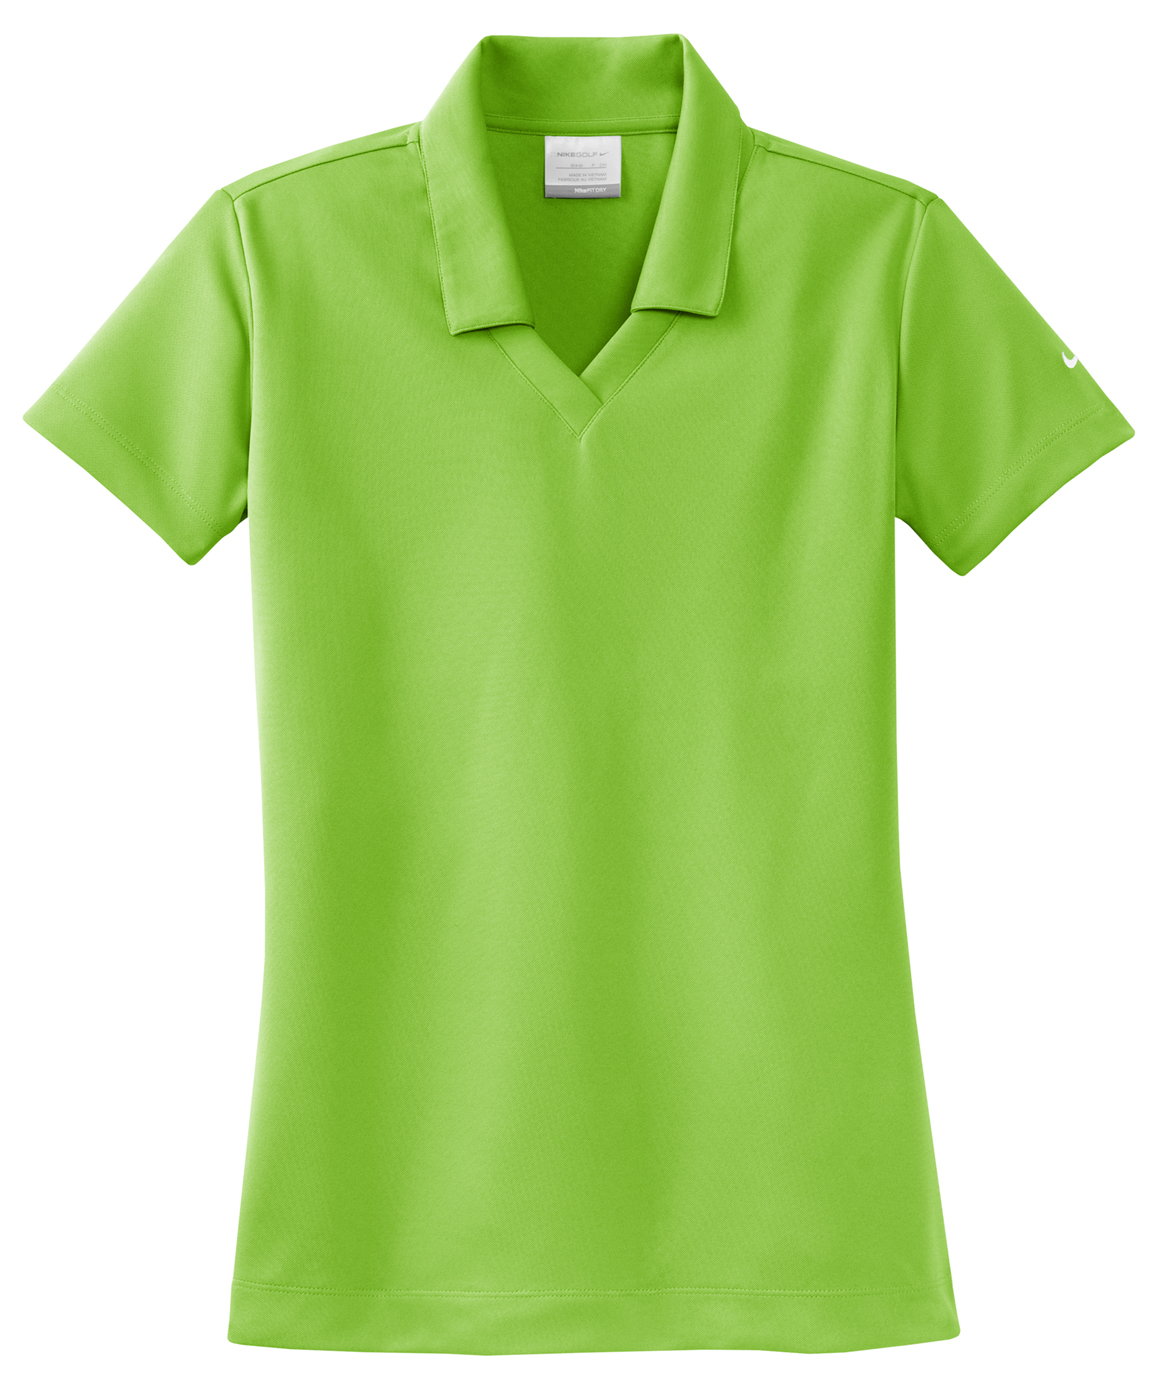 Nike golf dri fit micro pique women 39 s polo for Tailored fit shirts meaning